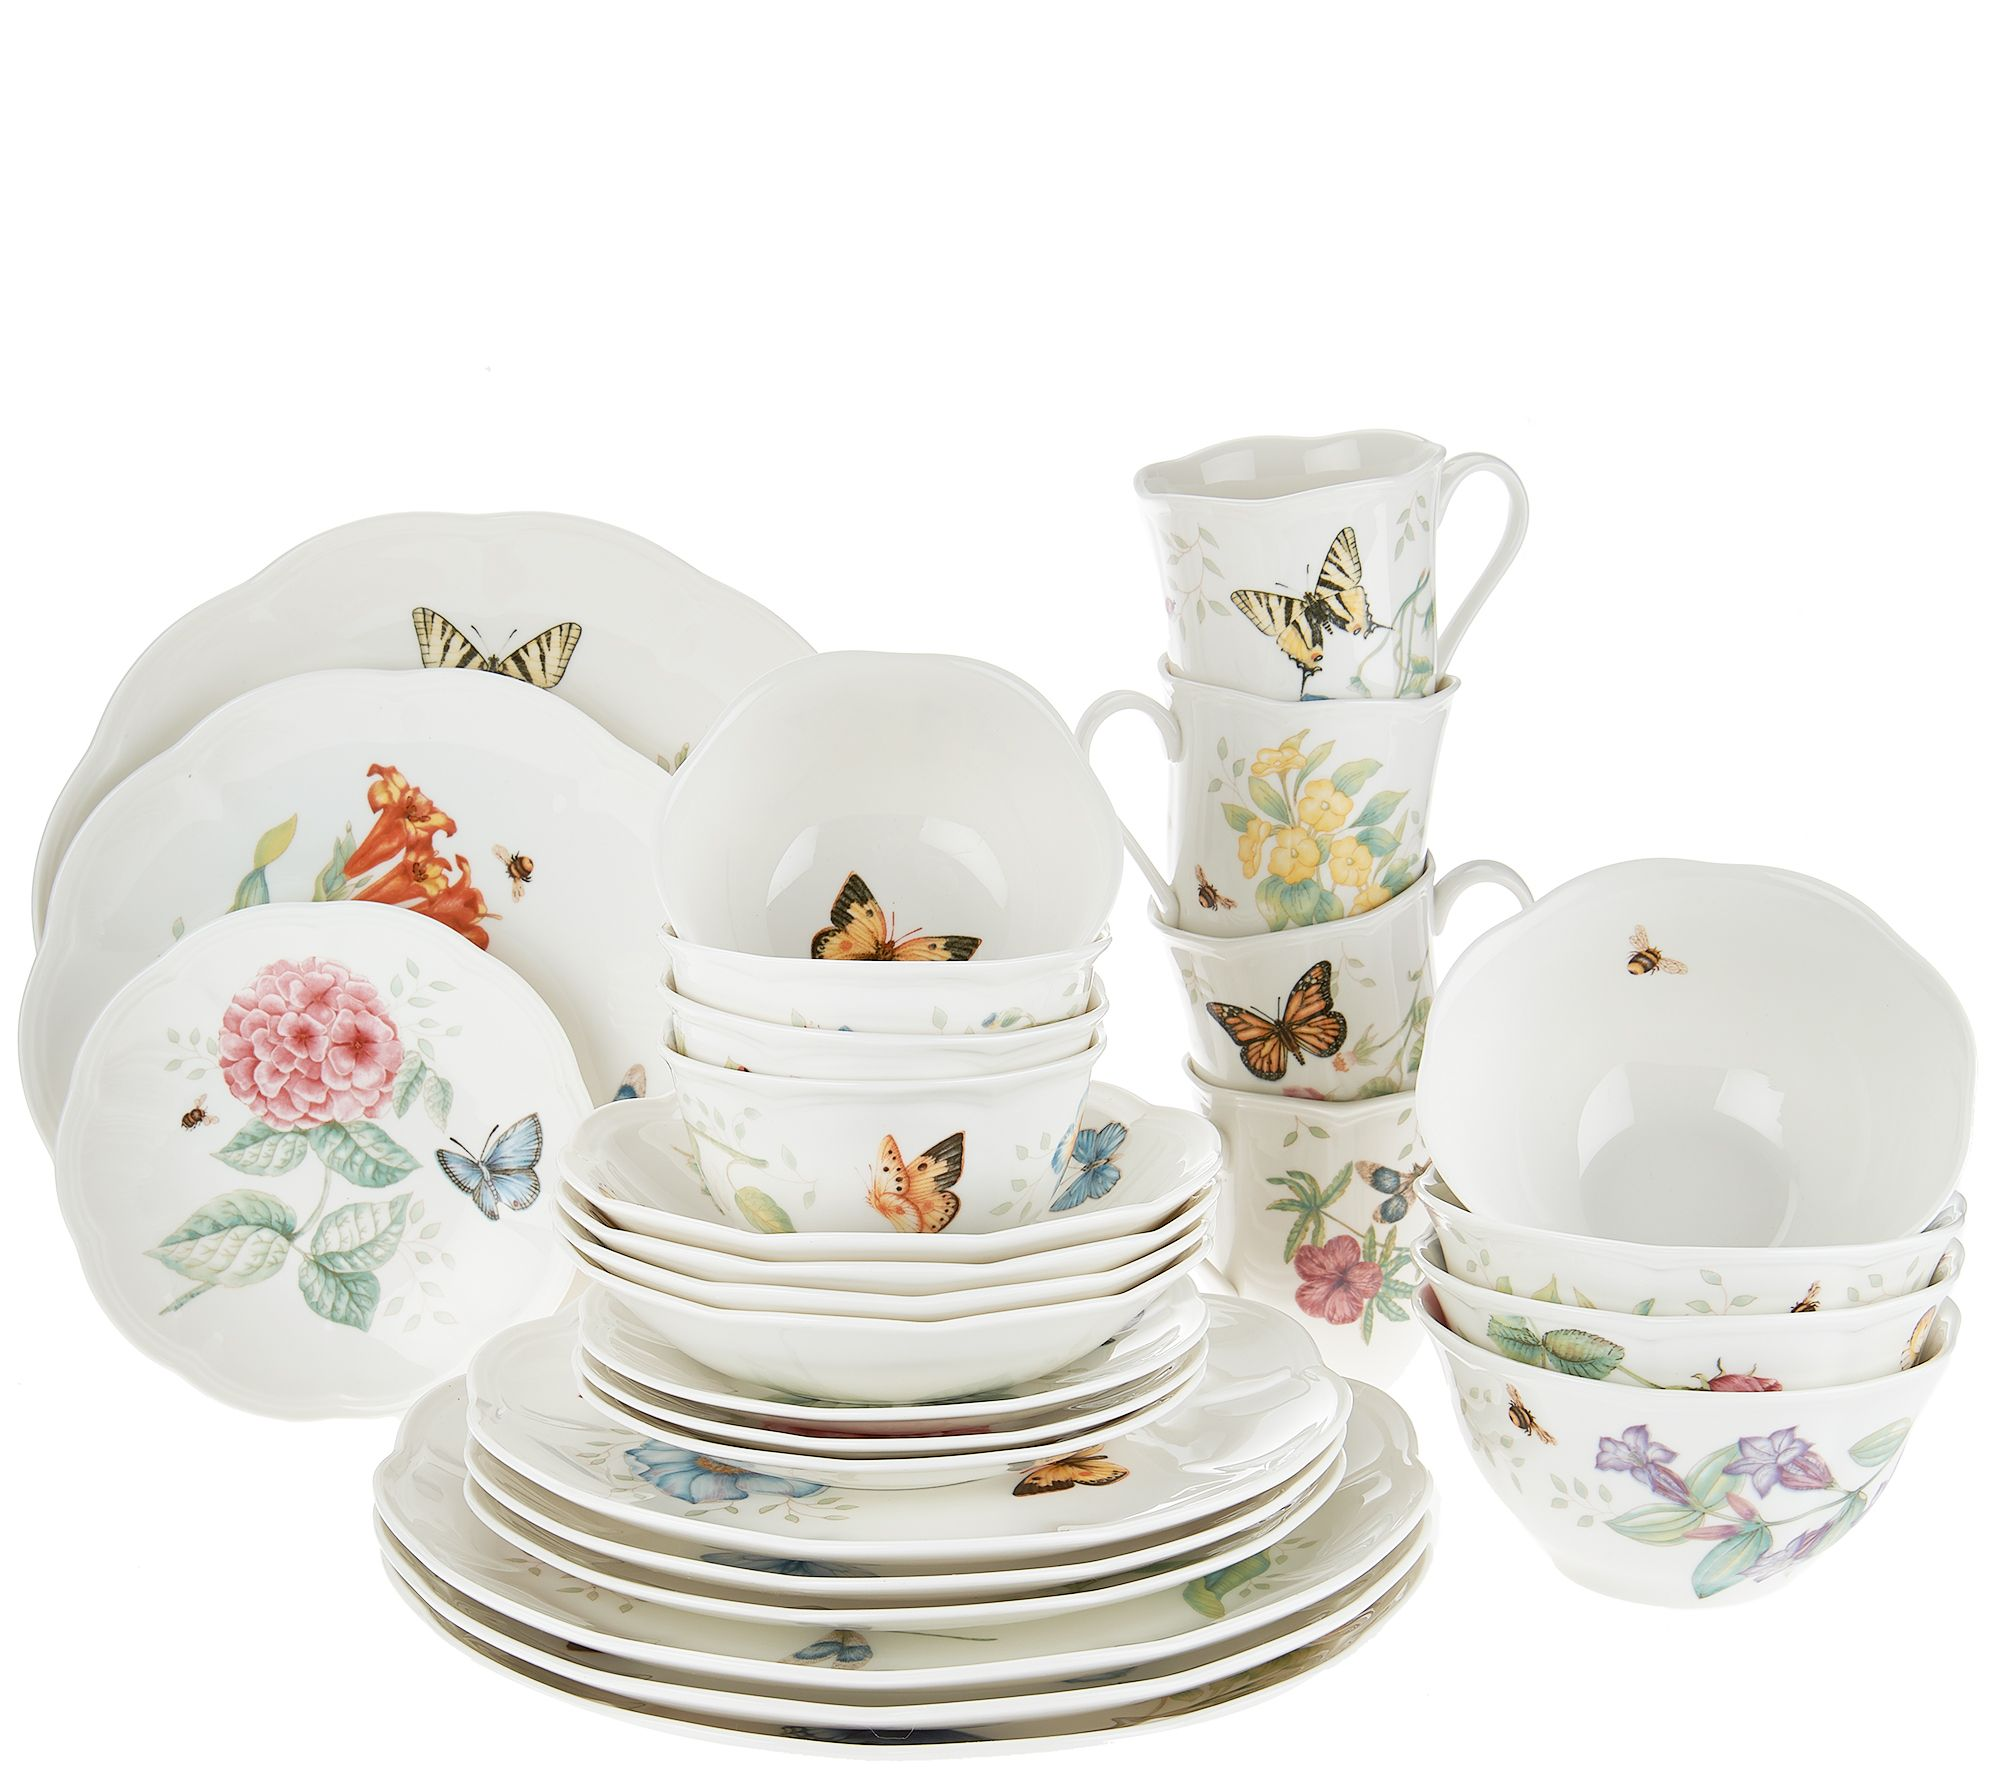 Lenox Butterfly Meadow 28-piece Porcelain Dinnerware Set - Page 1 \u2014 QVC.com  sc 1 st  QVC.com & Lenox Butterfly Meadow 28-piece Porcelain Dinnerware Set - Page 1 ...